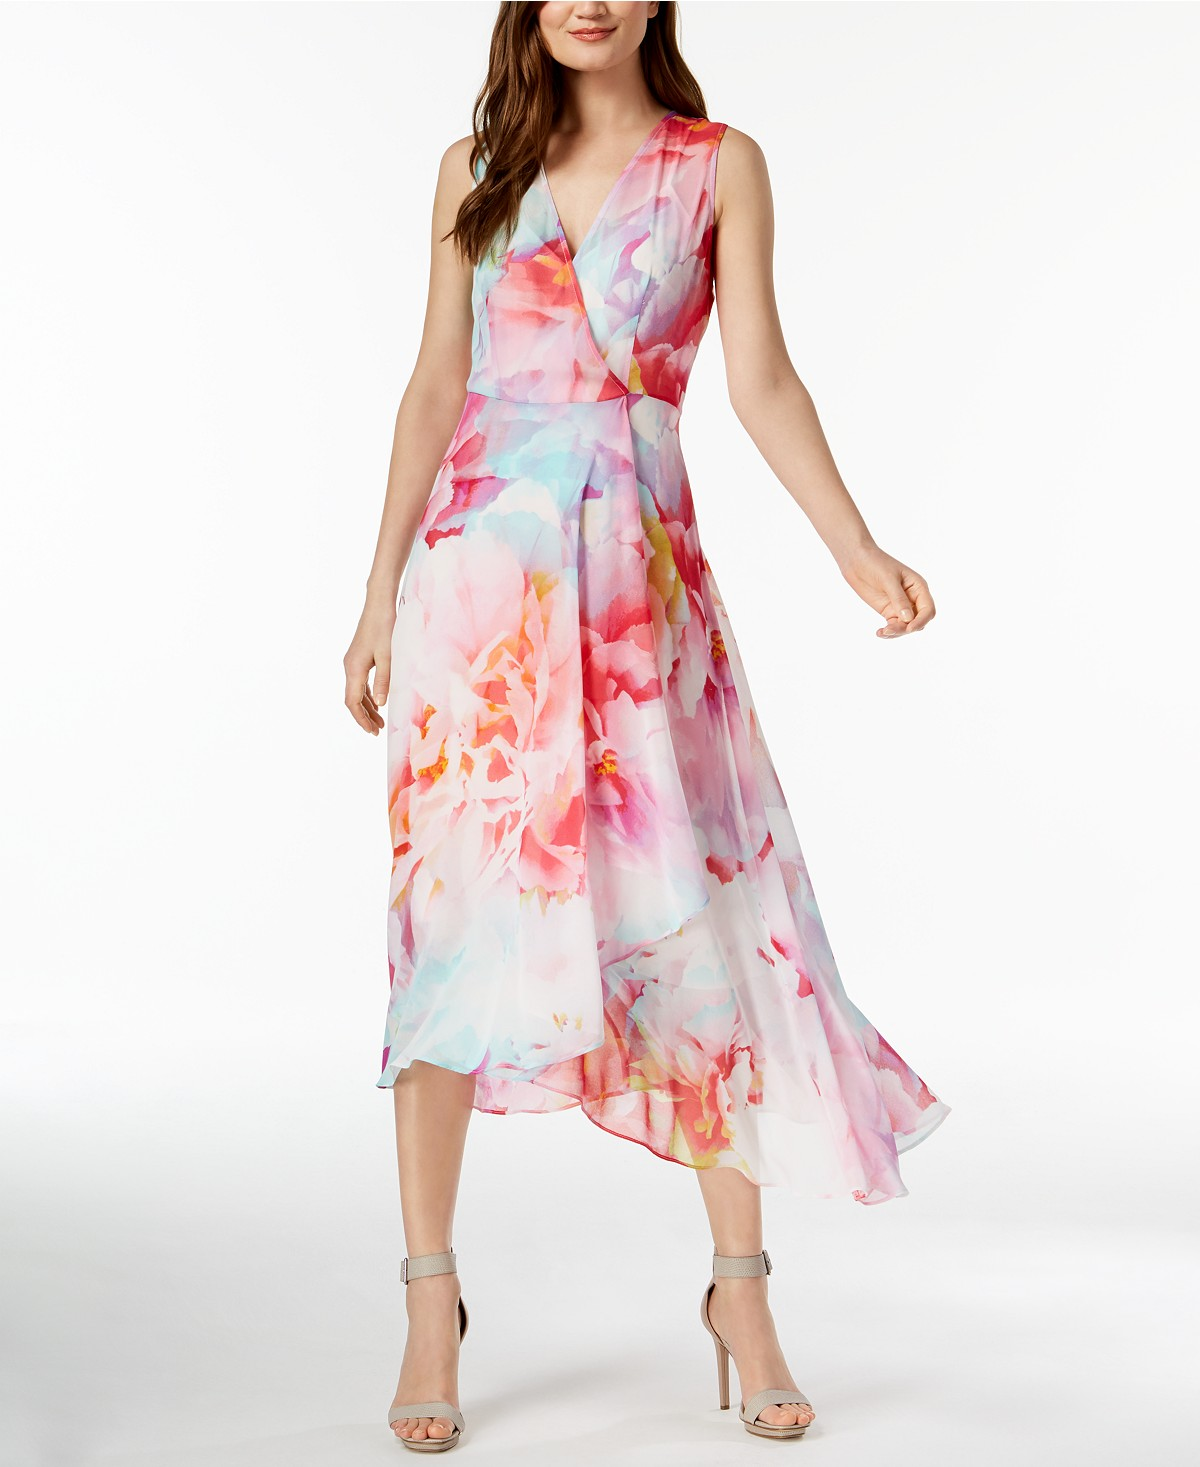 MACYS 48 HOUR SPECIAL! THOUSANDS OF DRESSES UP TO 50% OFF!